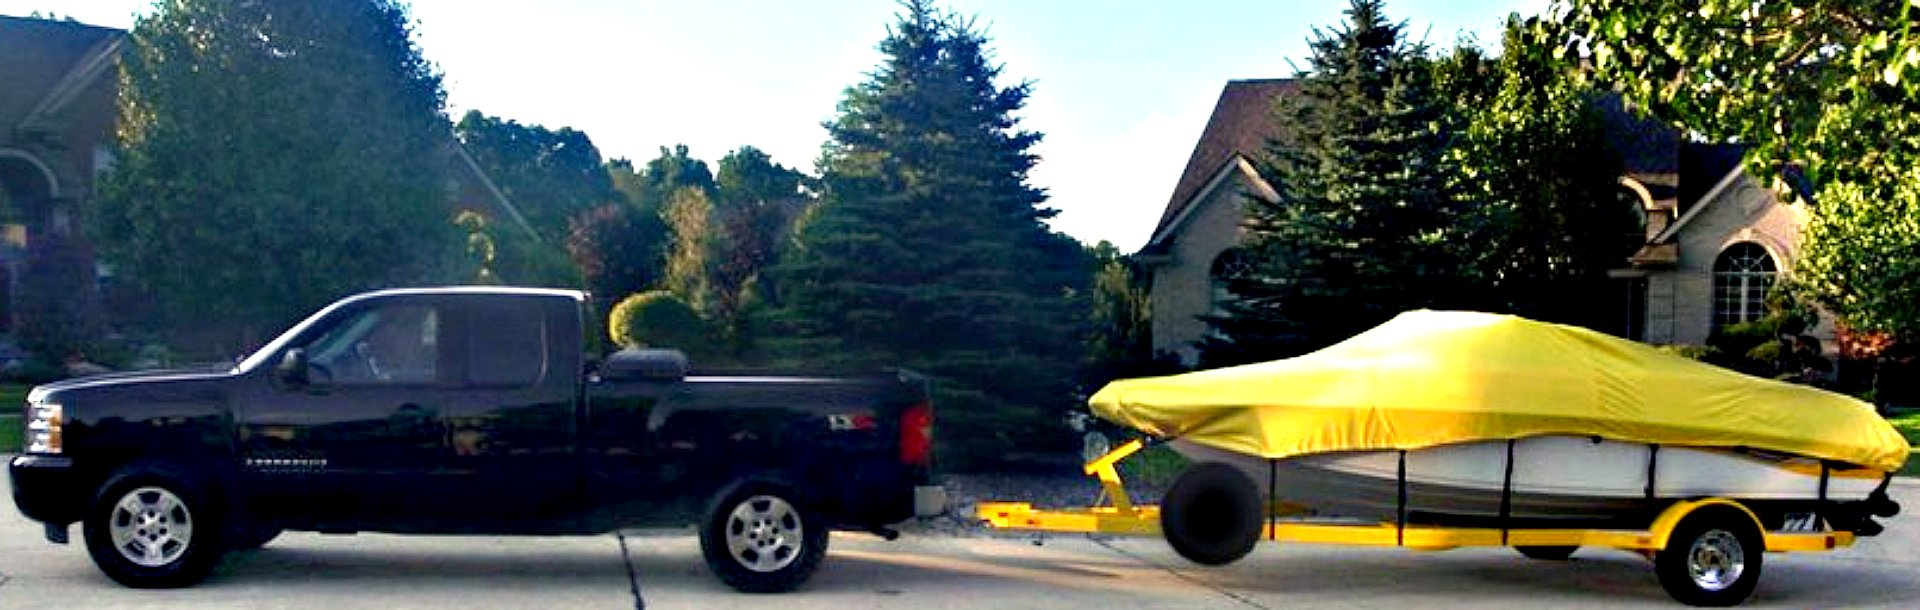 boat with a yellow cover being pulled behind a black truck